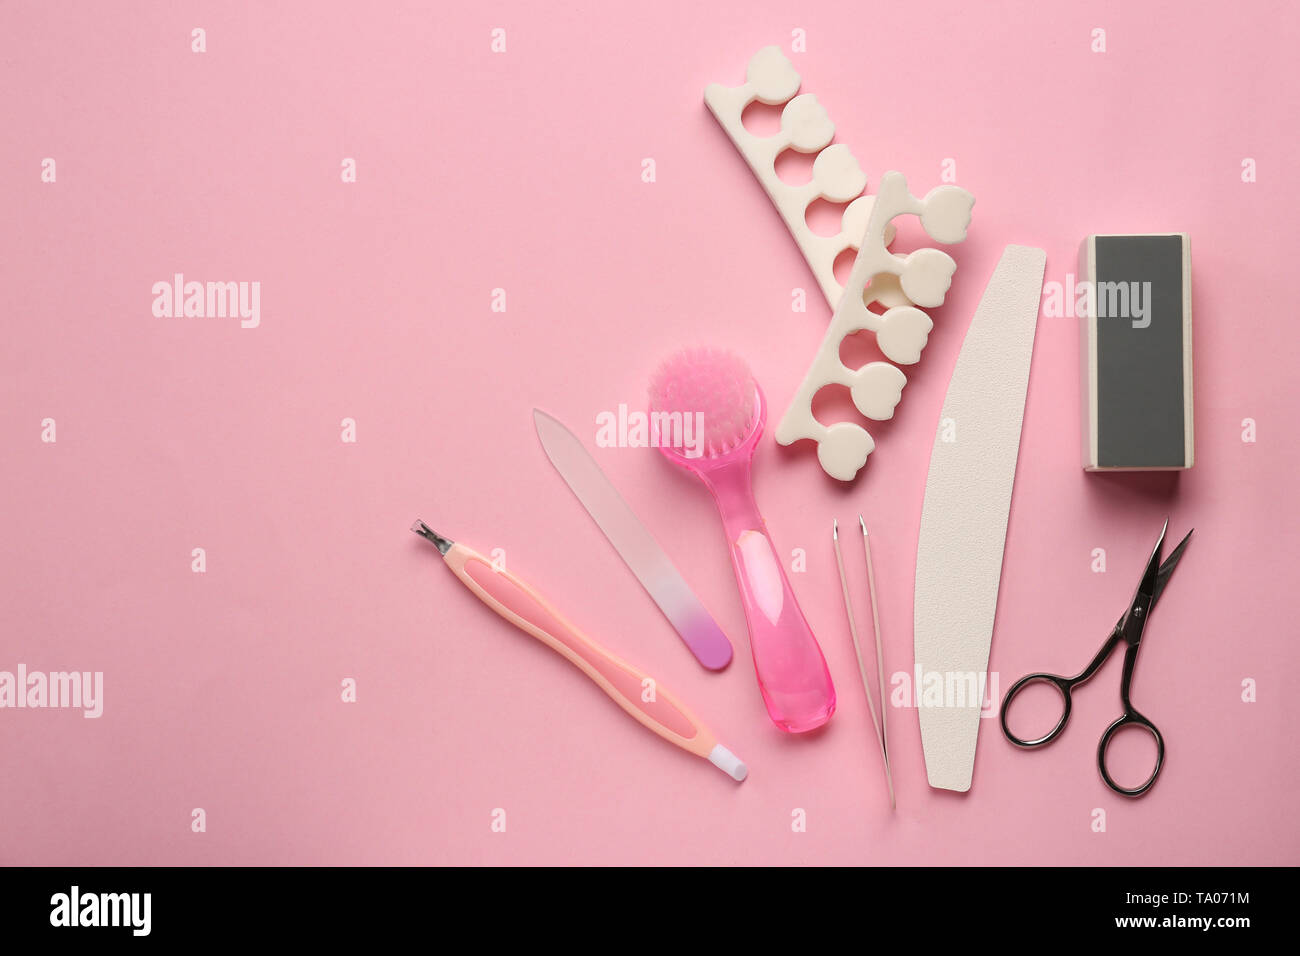 Set of pedicure tools on color background - Stock Image